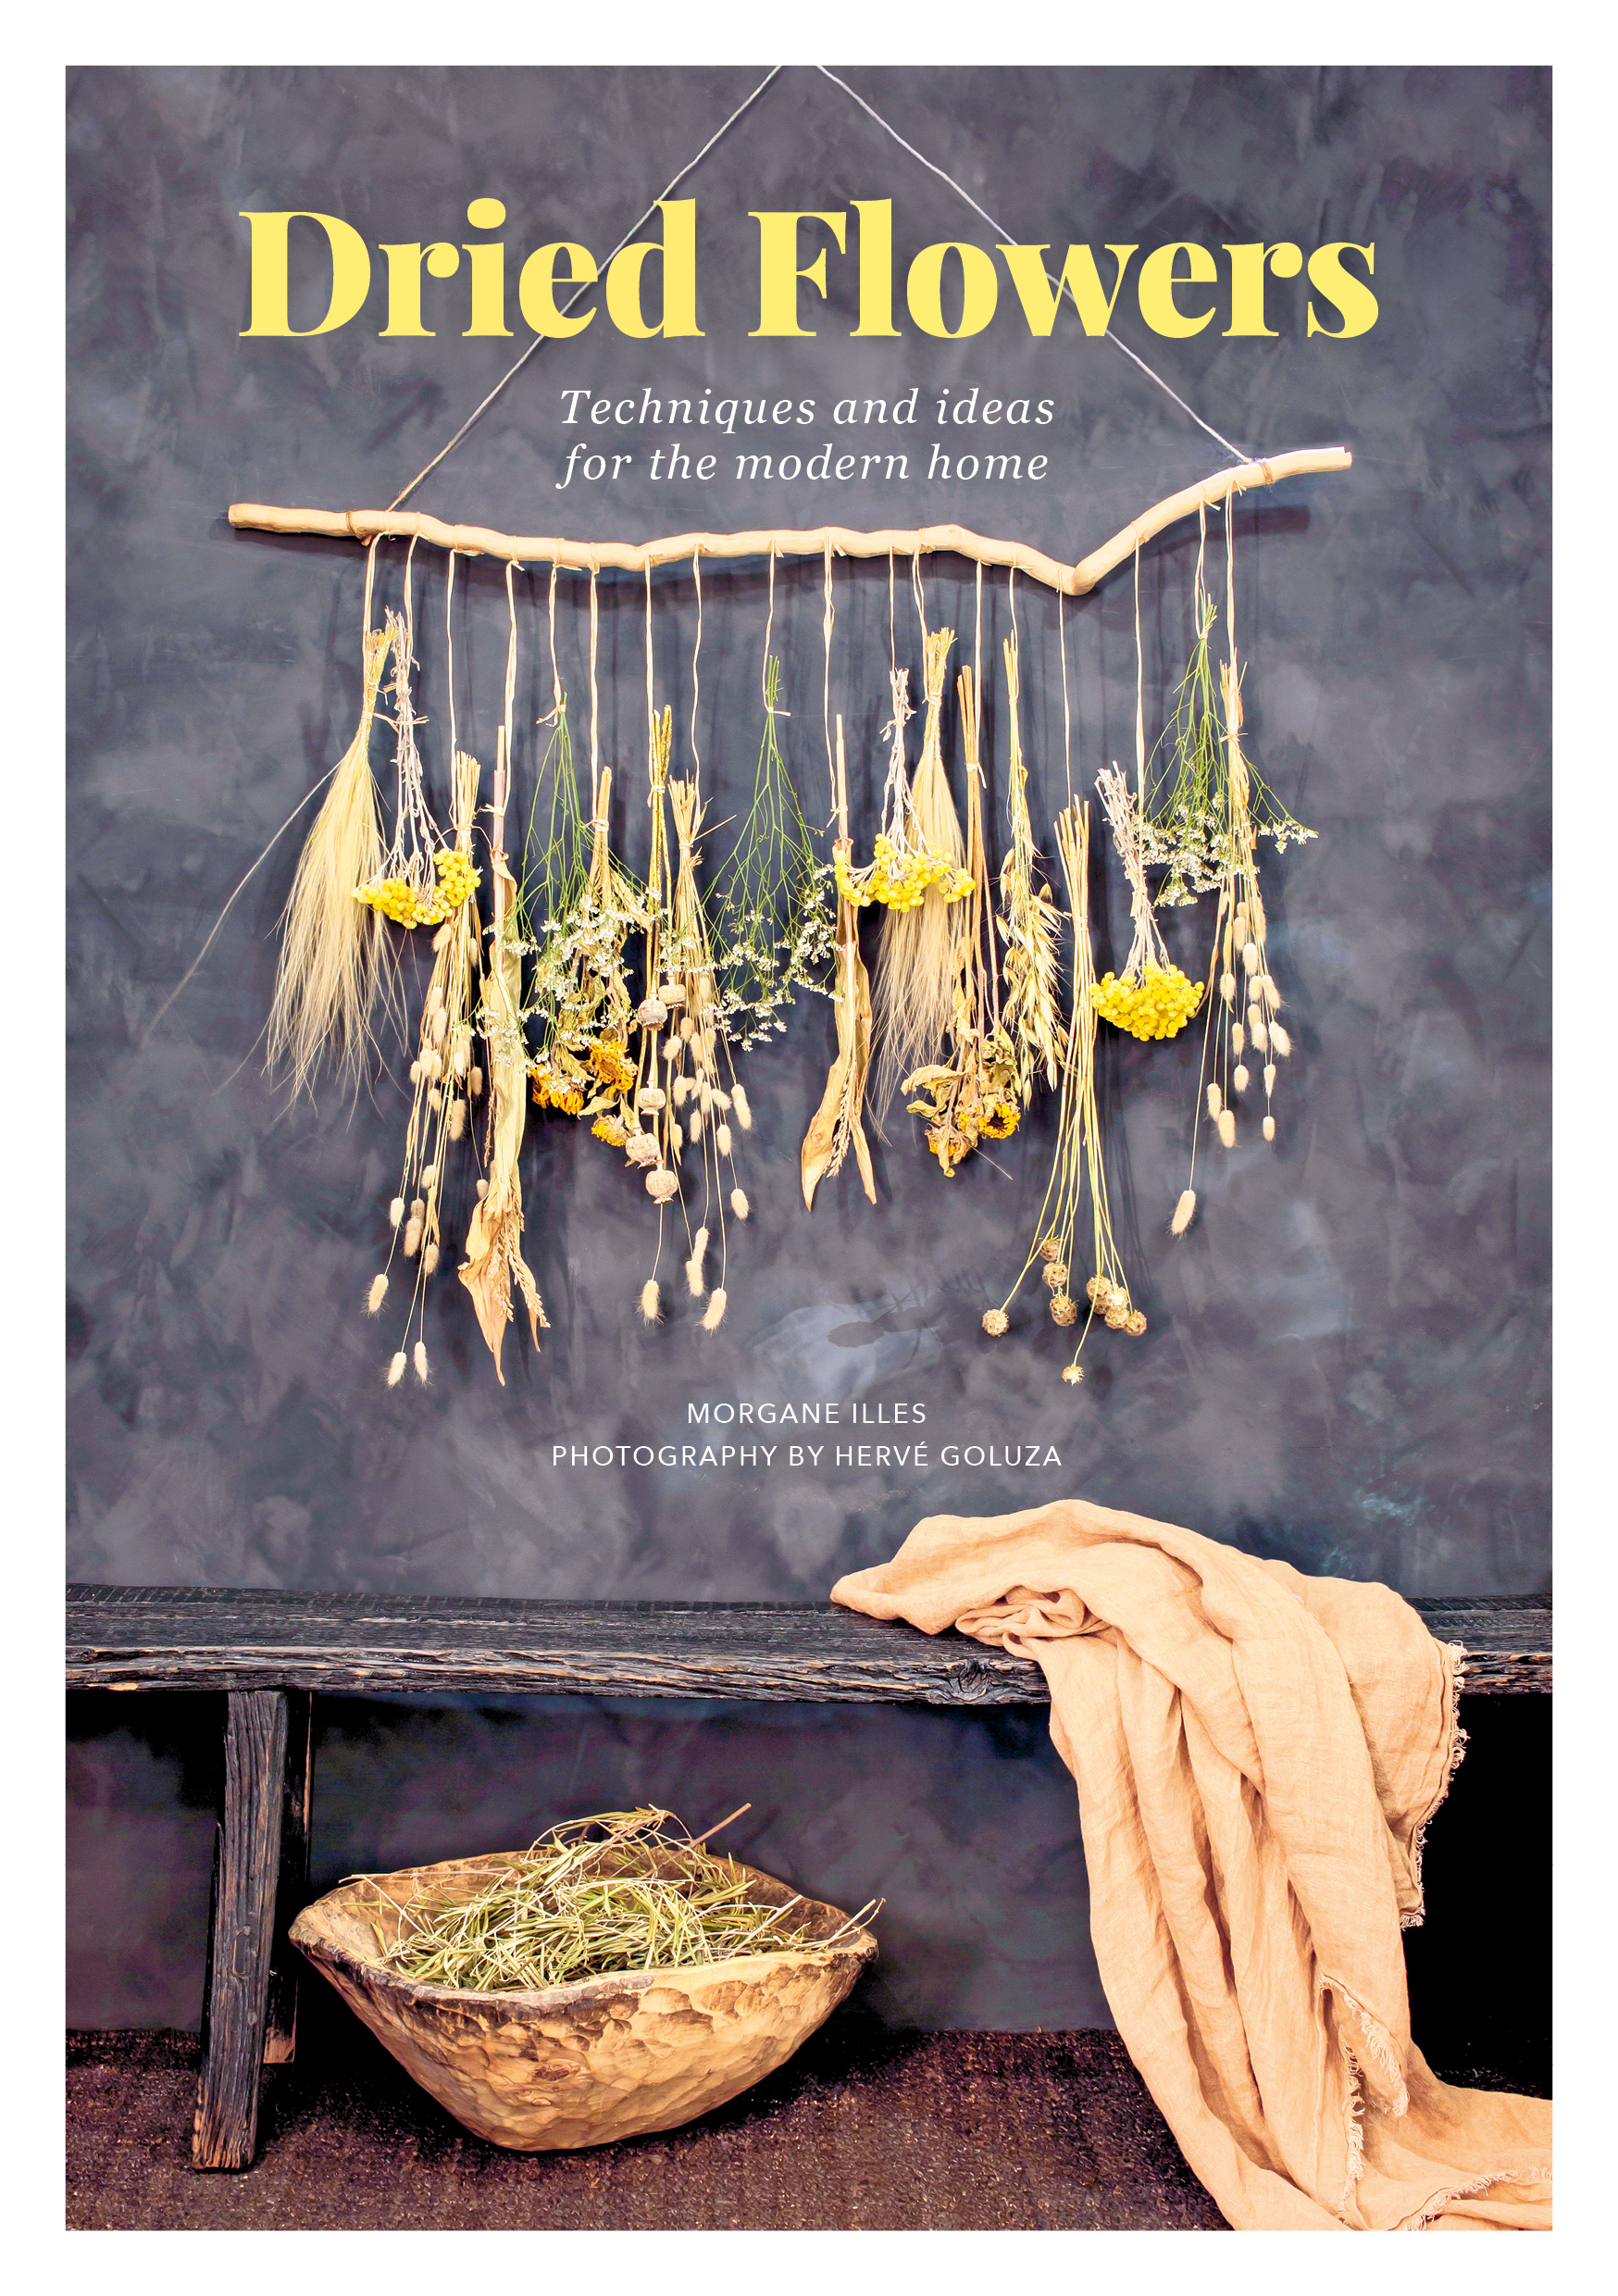 Dried Flowers Techniques and ideas for the modern home